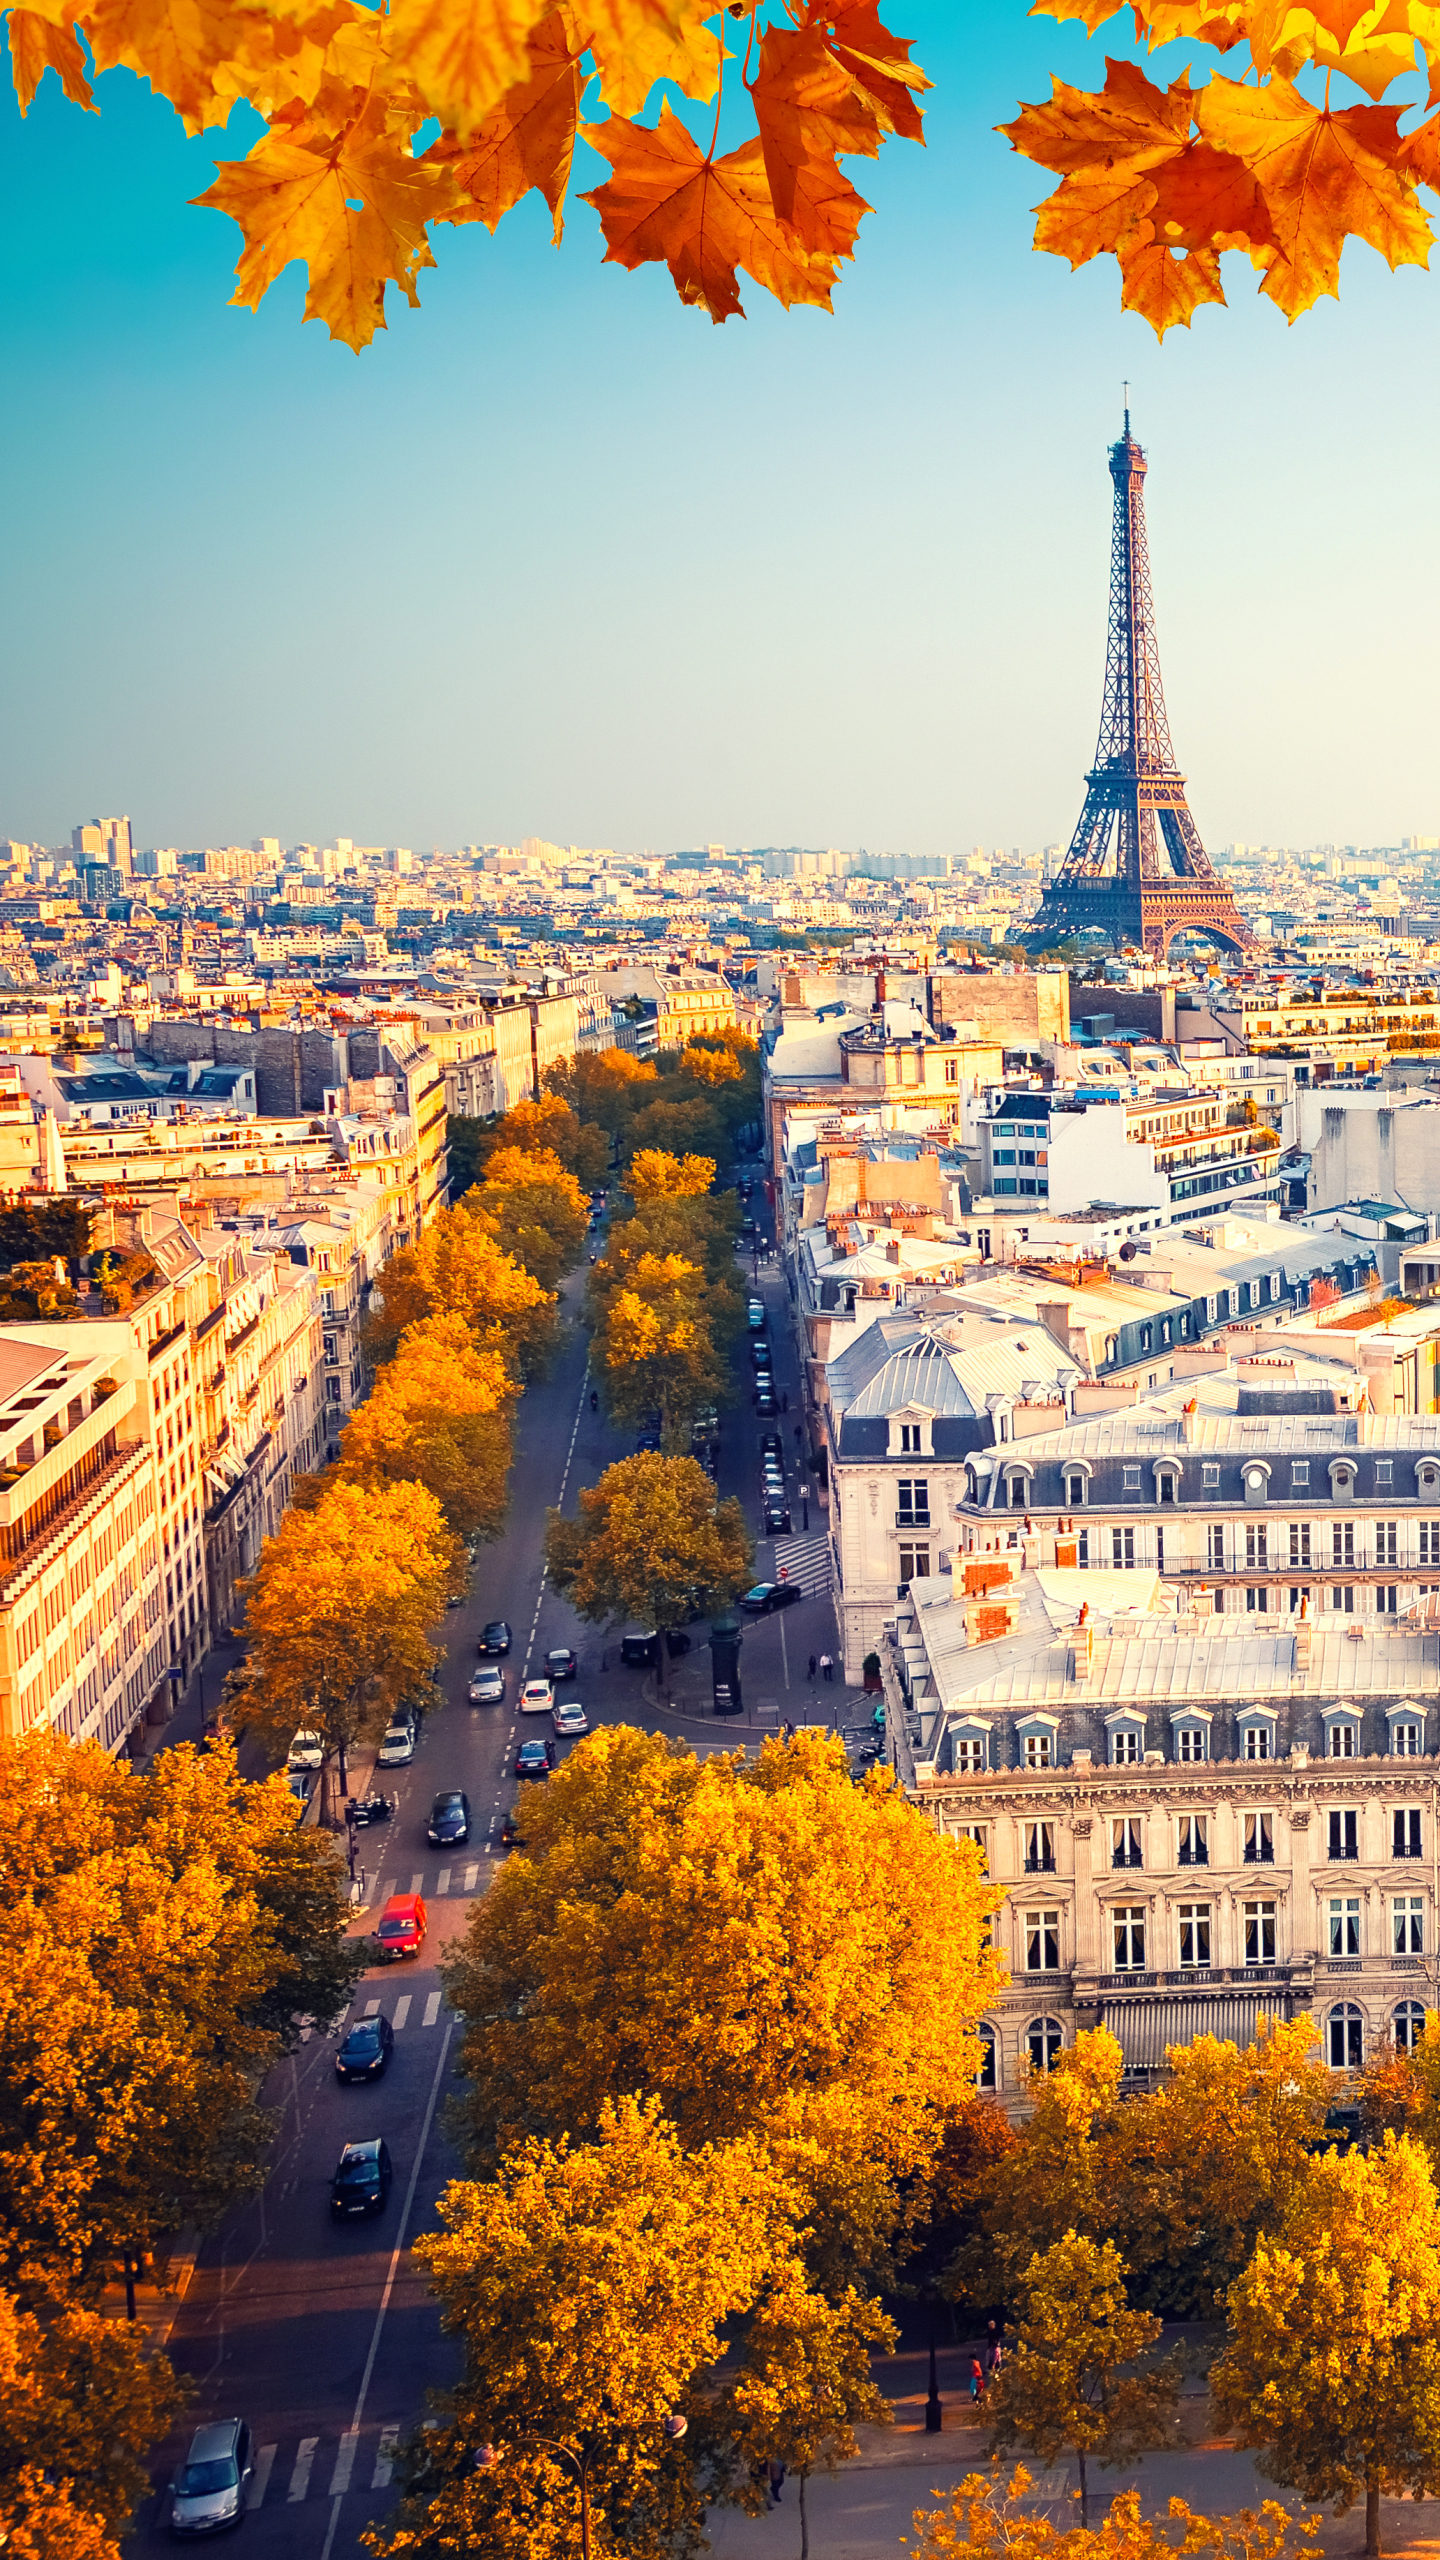 Man Made Paris 1440x2560 Wallpaper Id 713621 Mobile Abyss